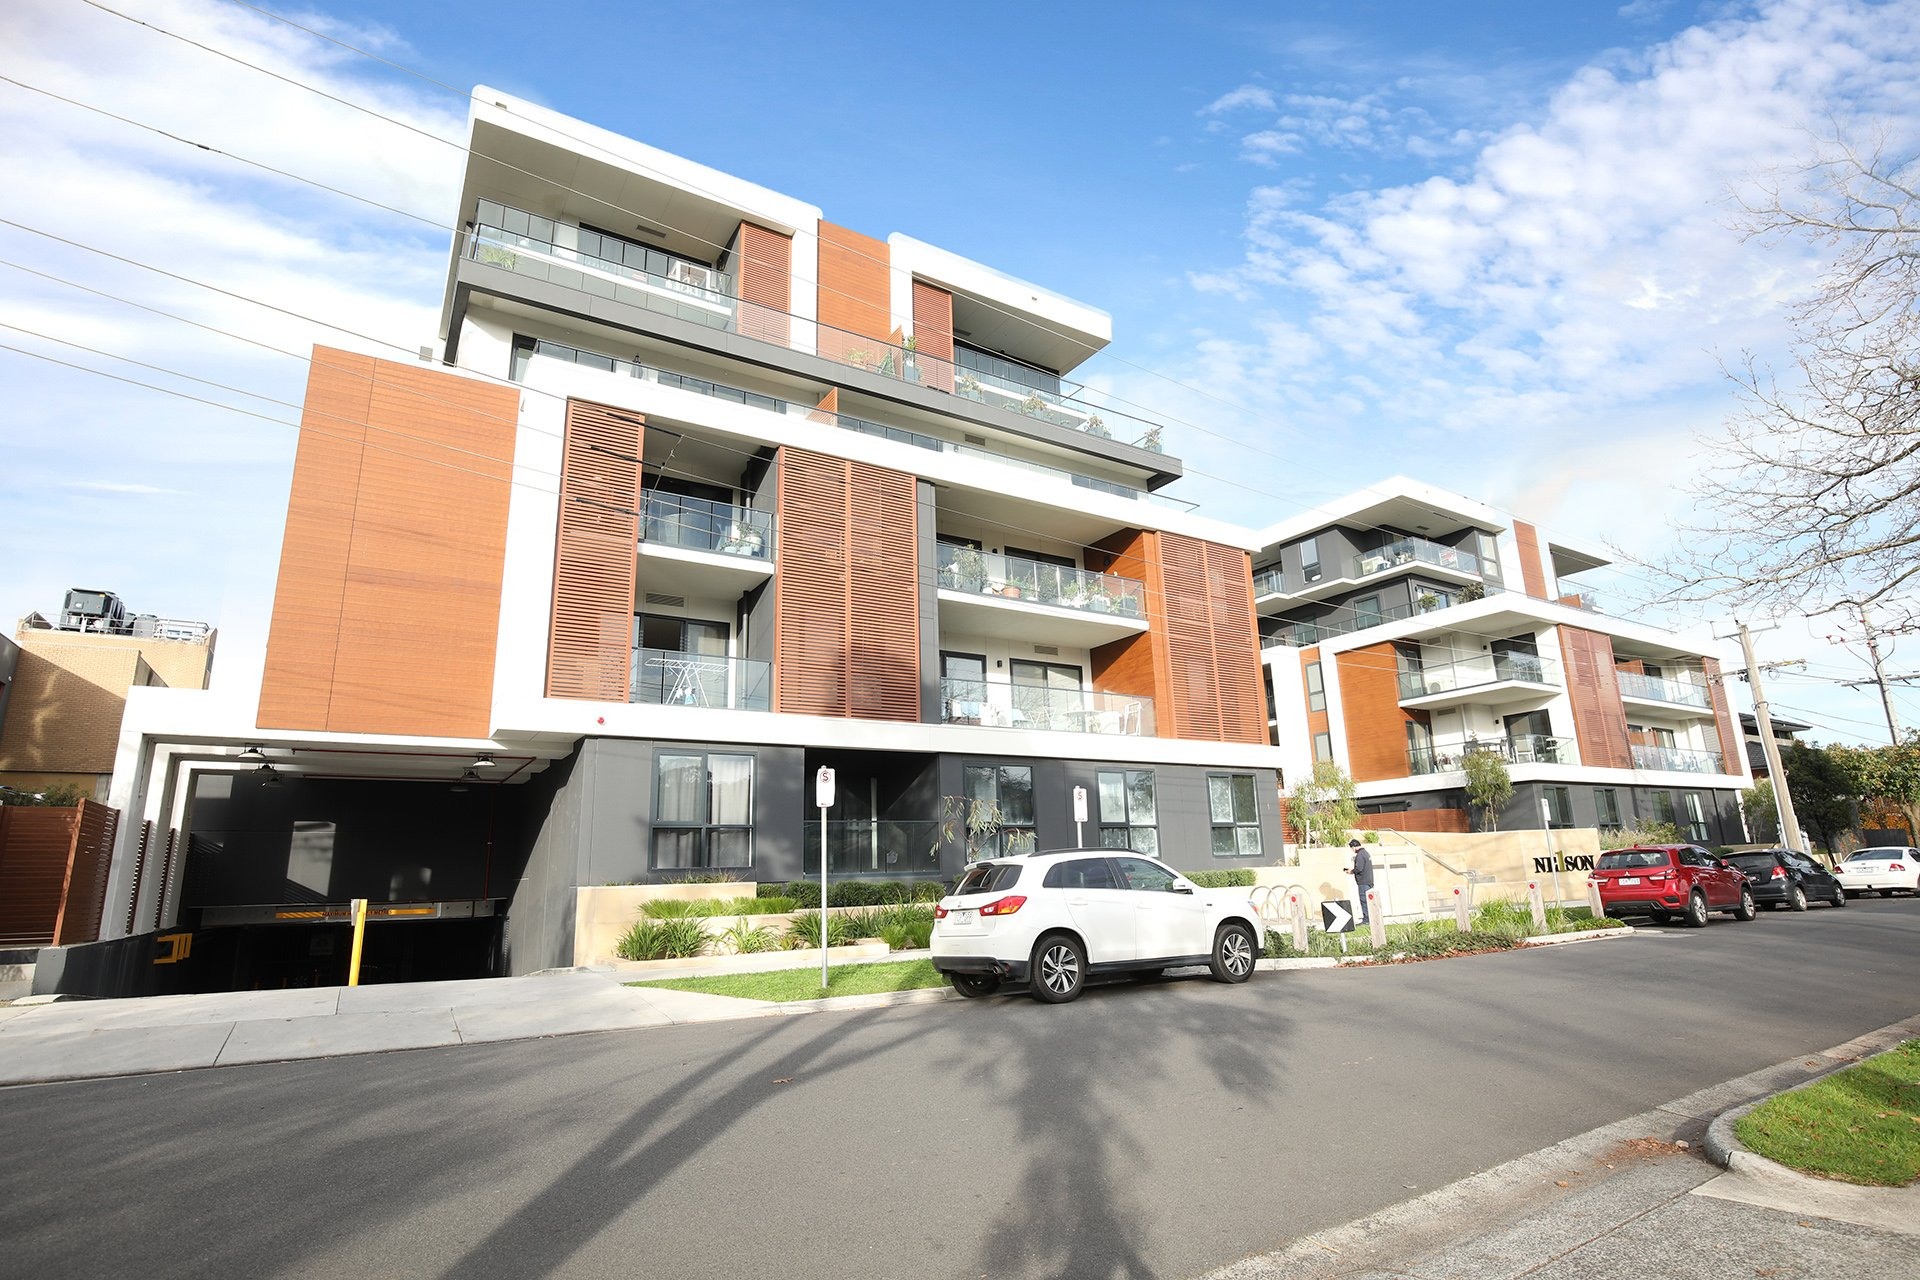 G11/1A Nelson Street, Ringwood - Image 1